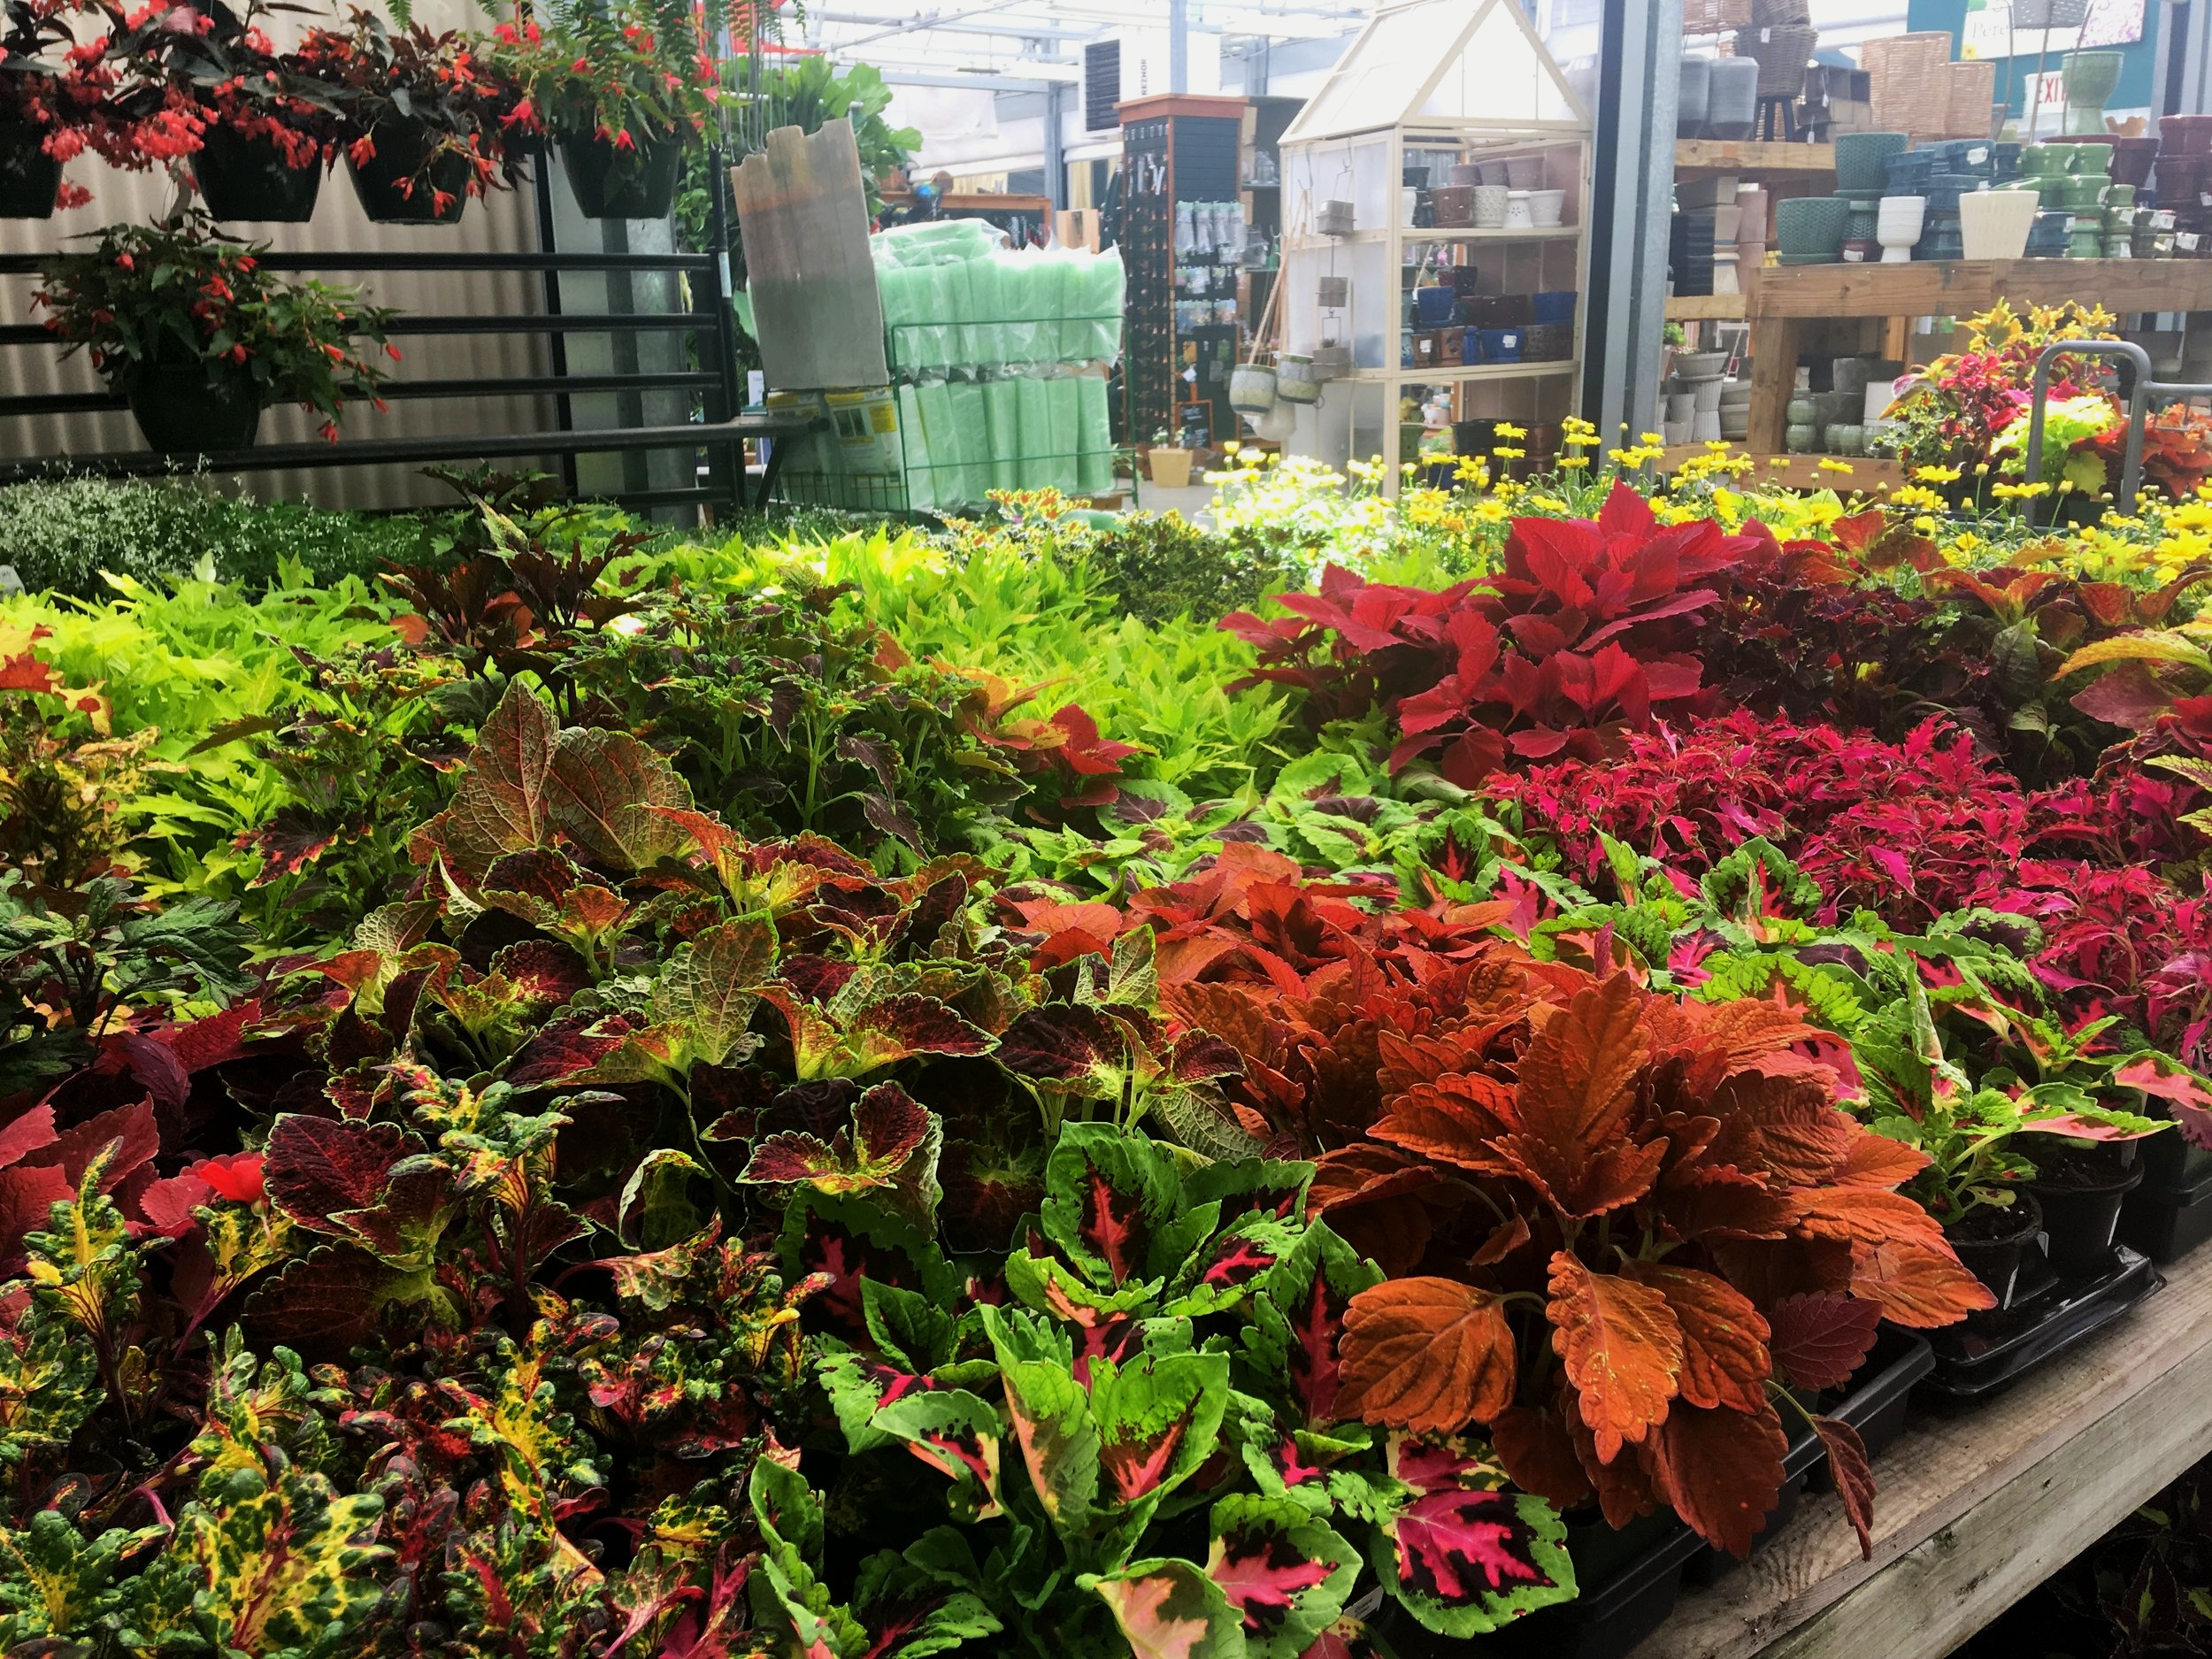 There's a coleus for everyone.